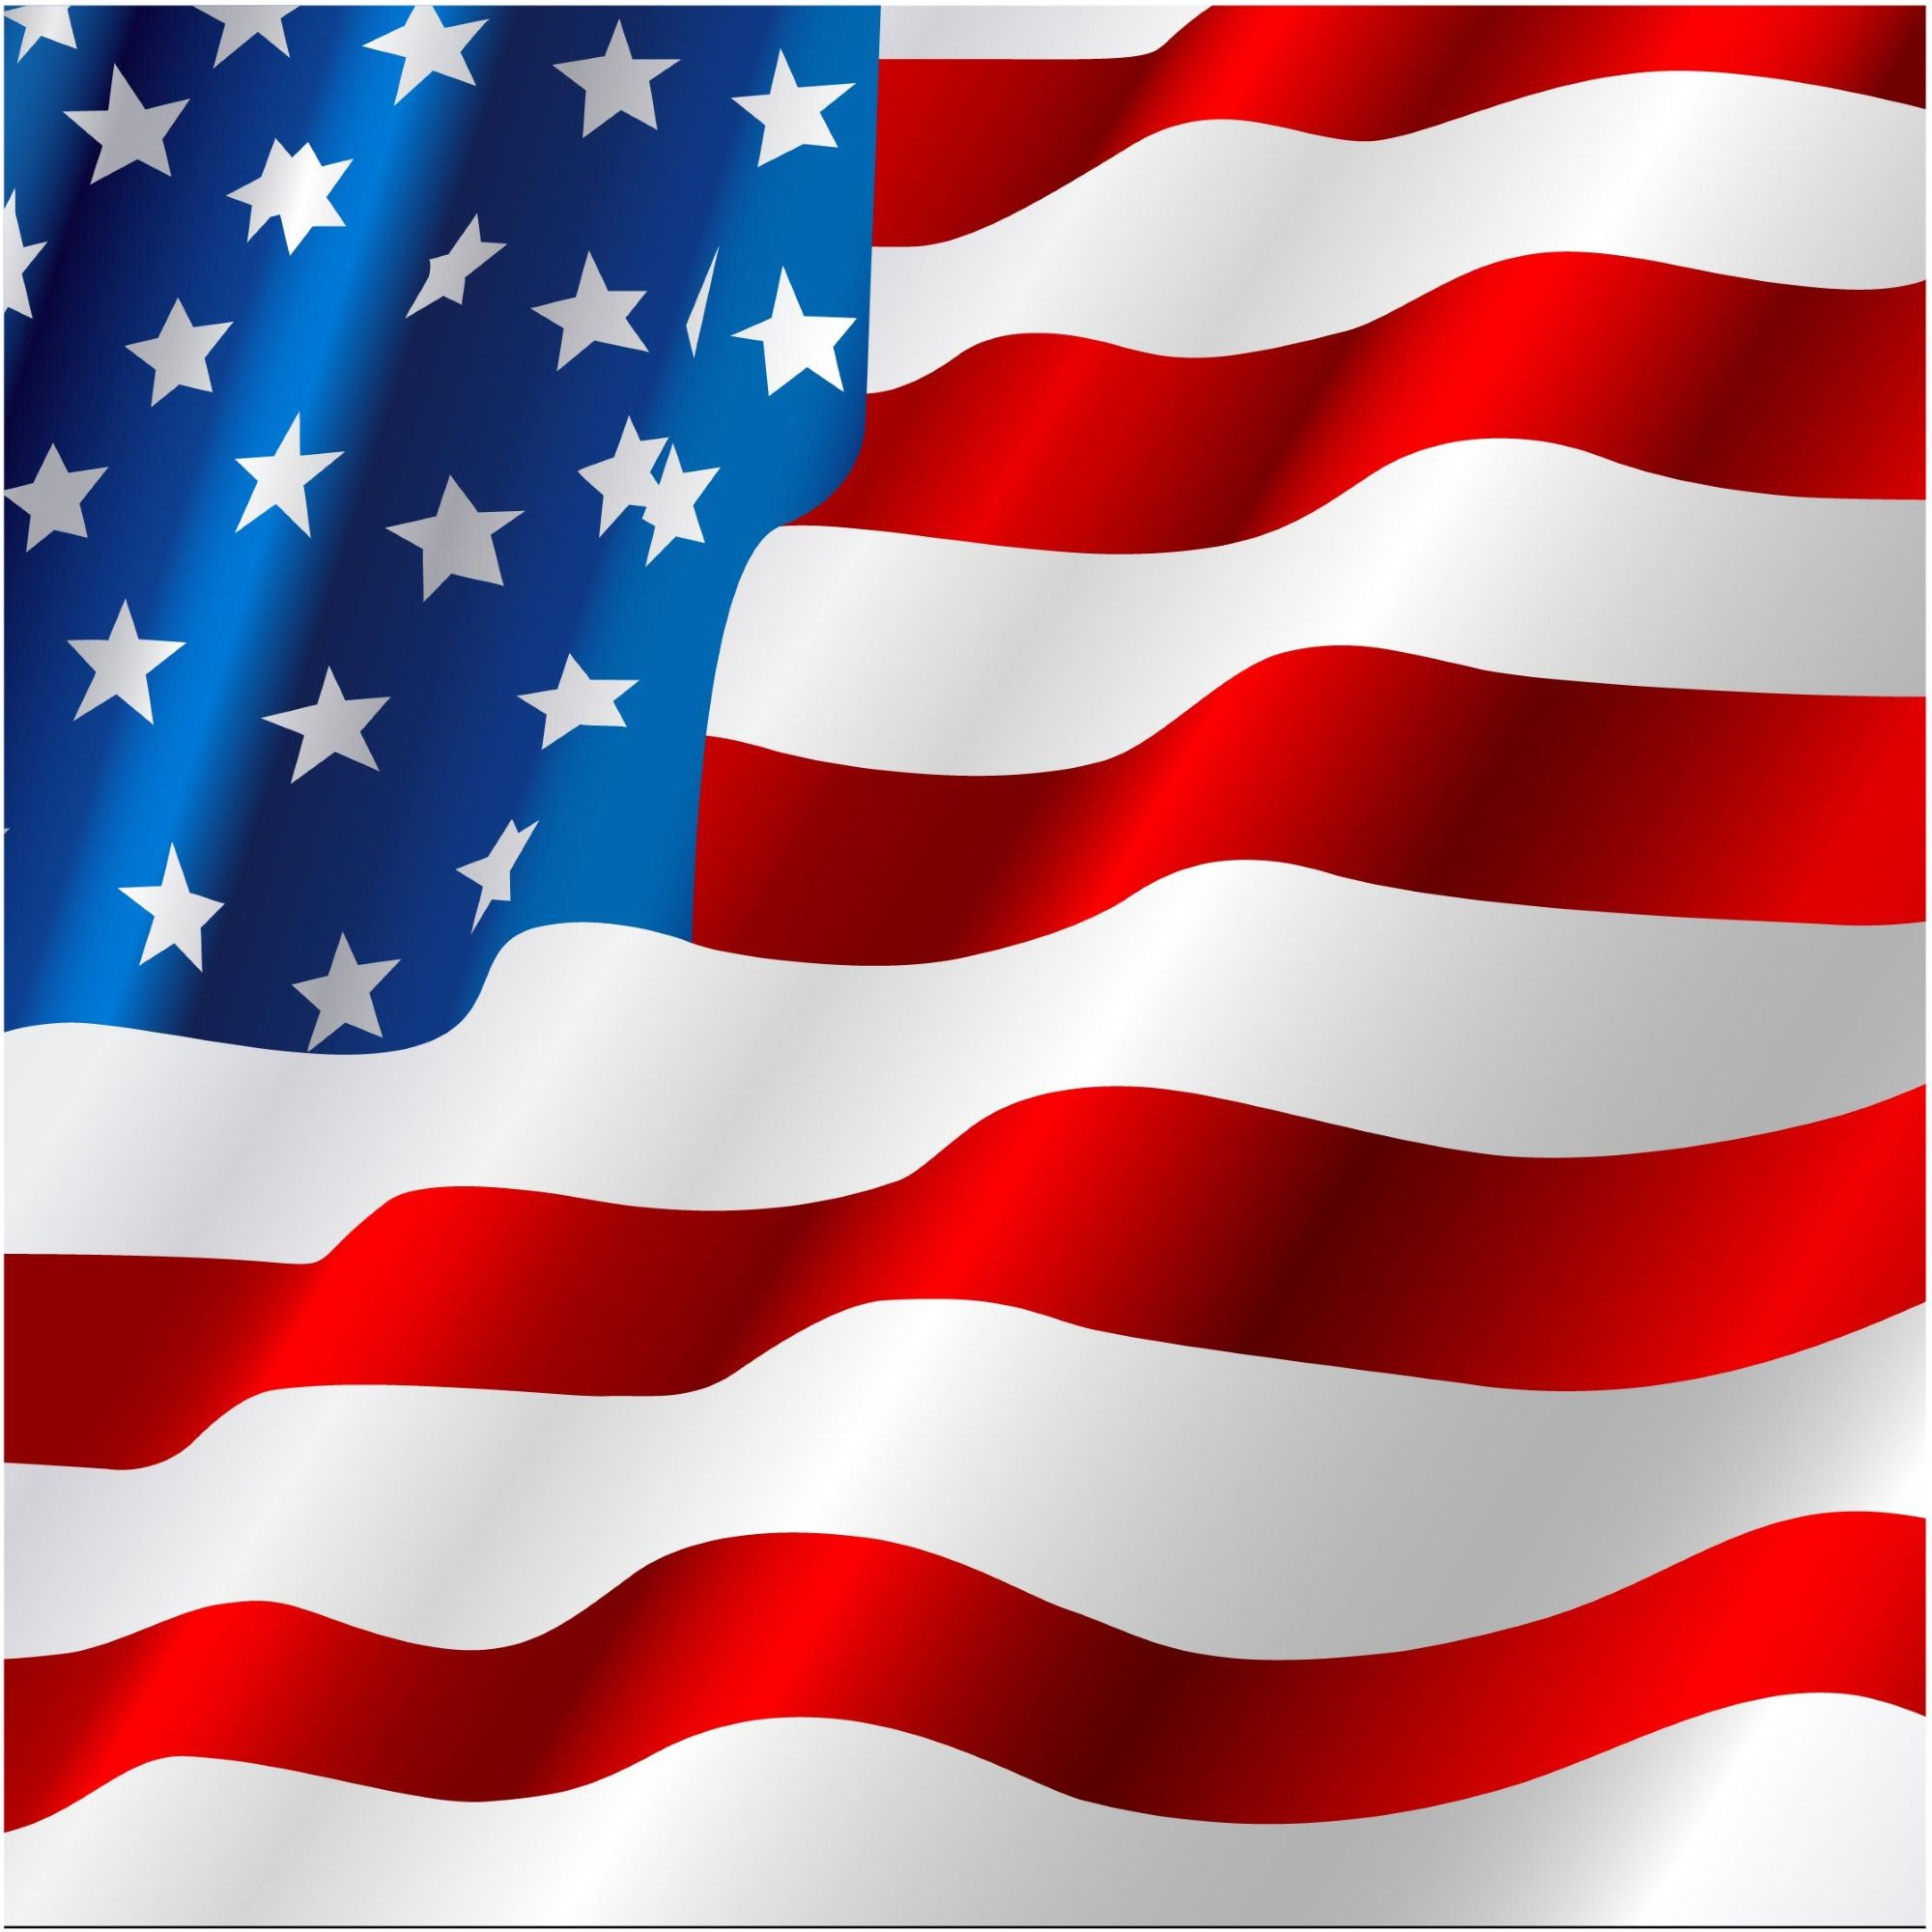 United States Flag Vector At Getdrawings